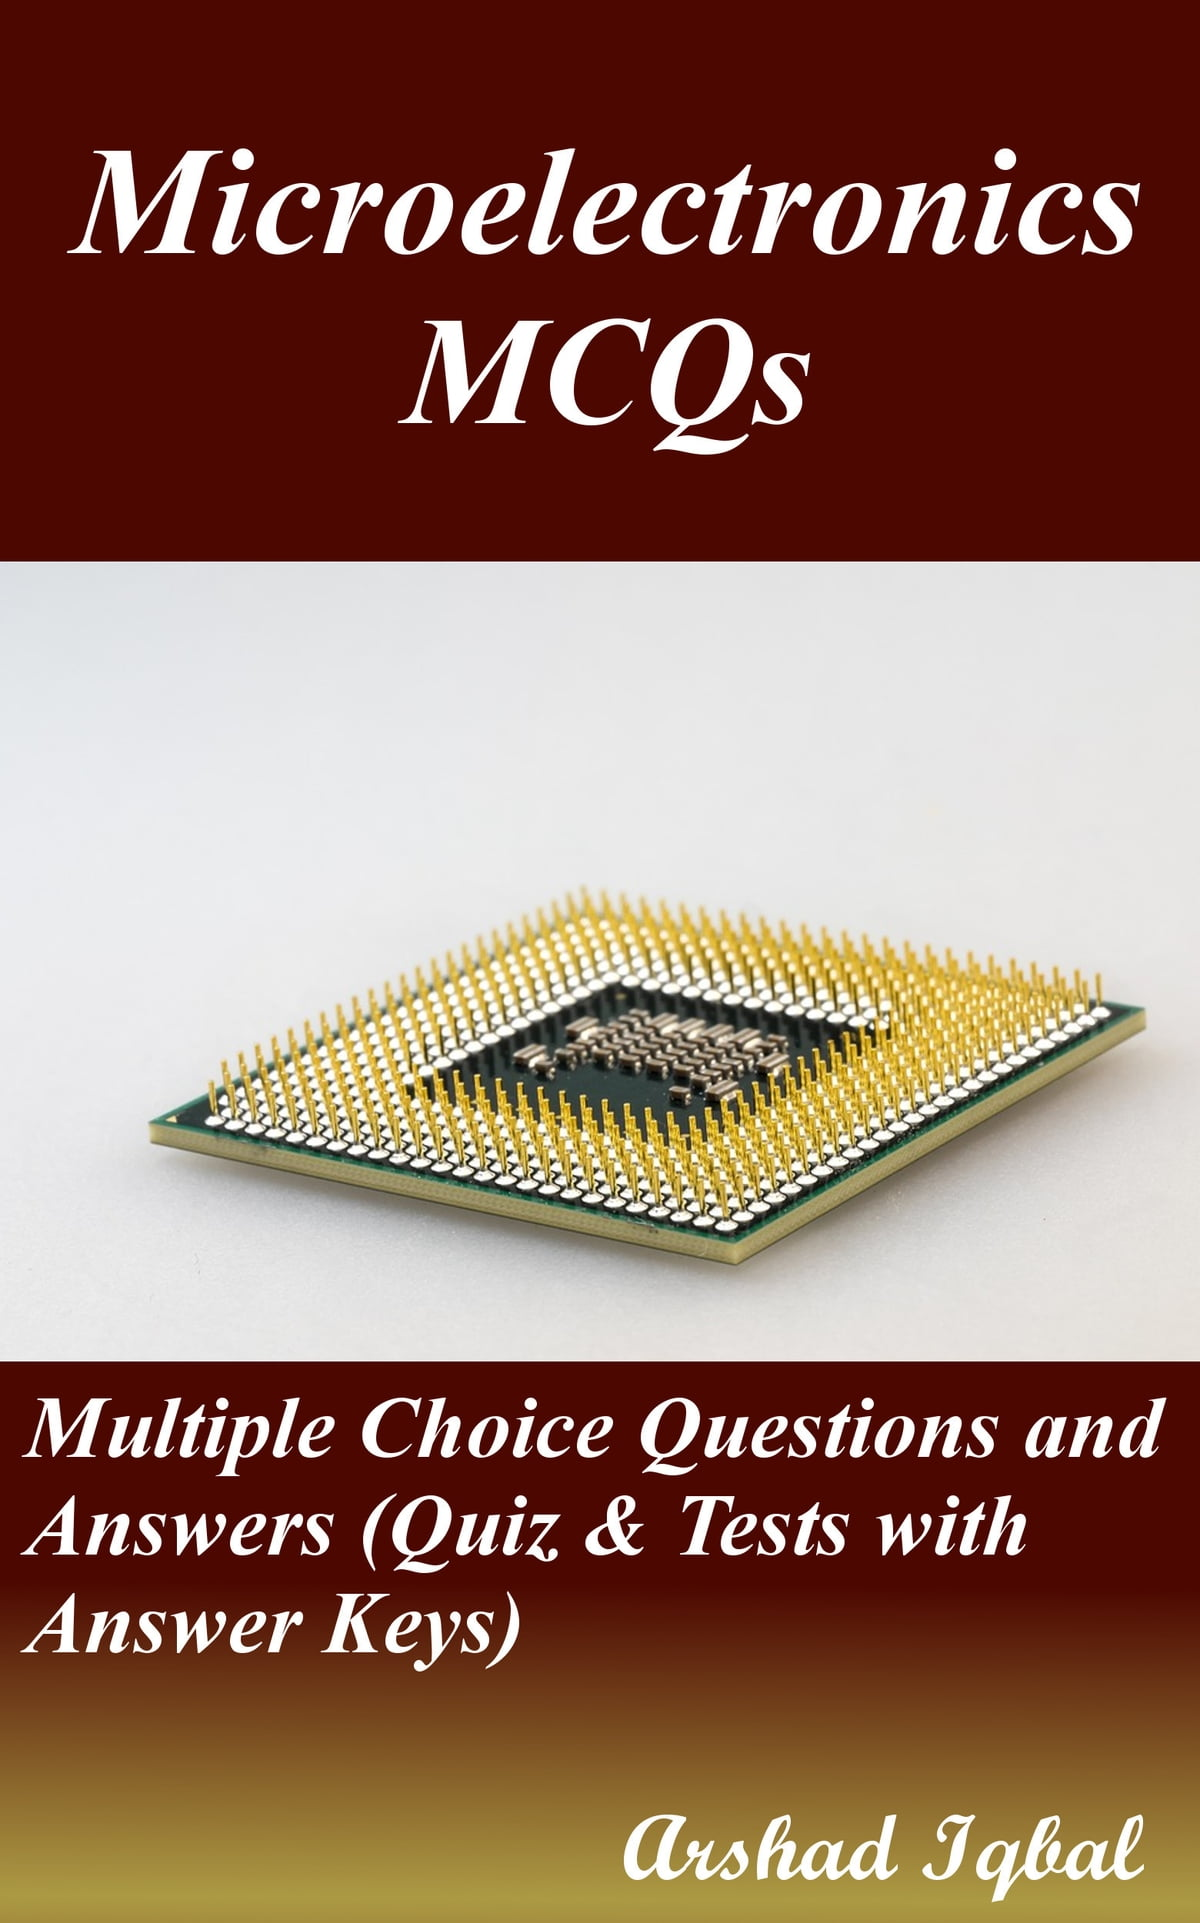 Microelectronics Mcqs Multiple Choice Questions And Answers Quiz Tests With Answer Keys Ebook By Arshad Iqbal 9781310206511 Rakuten Kobo United States